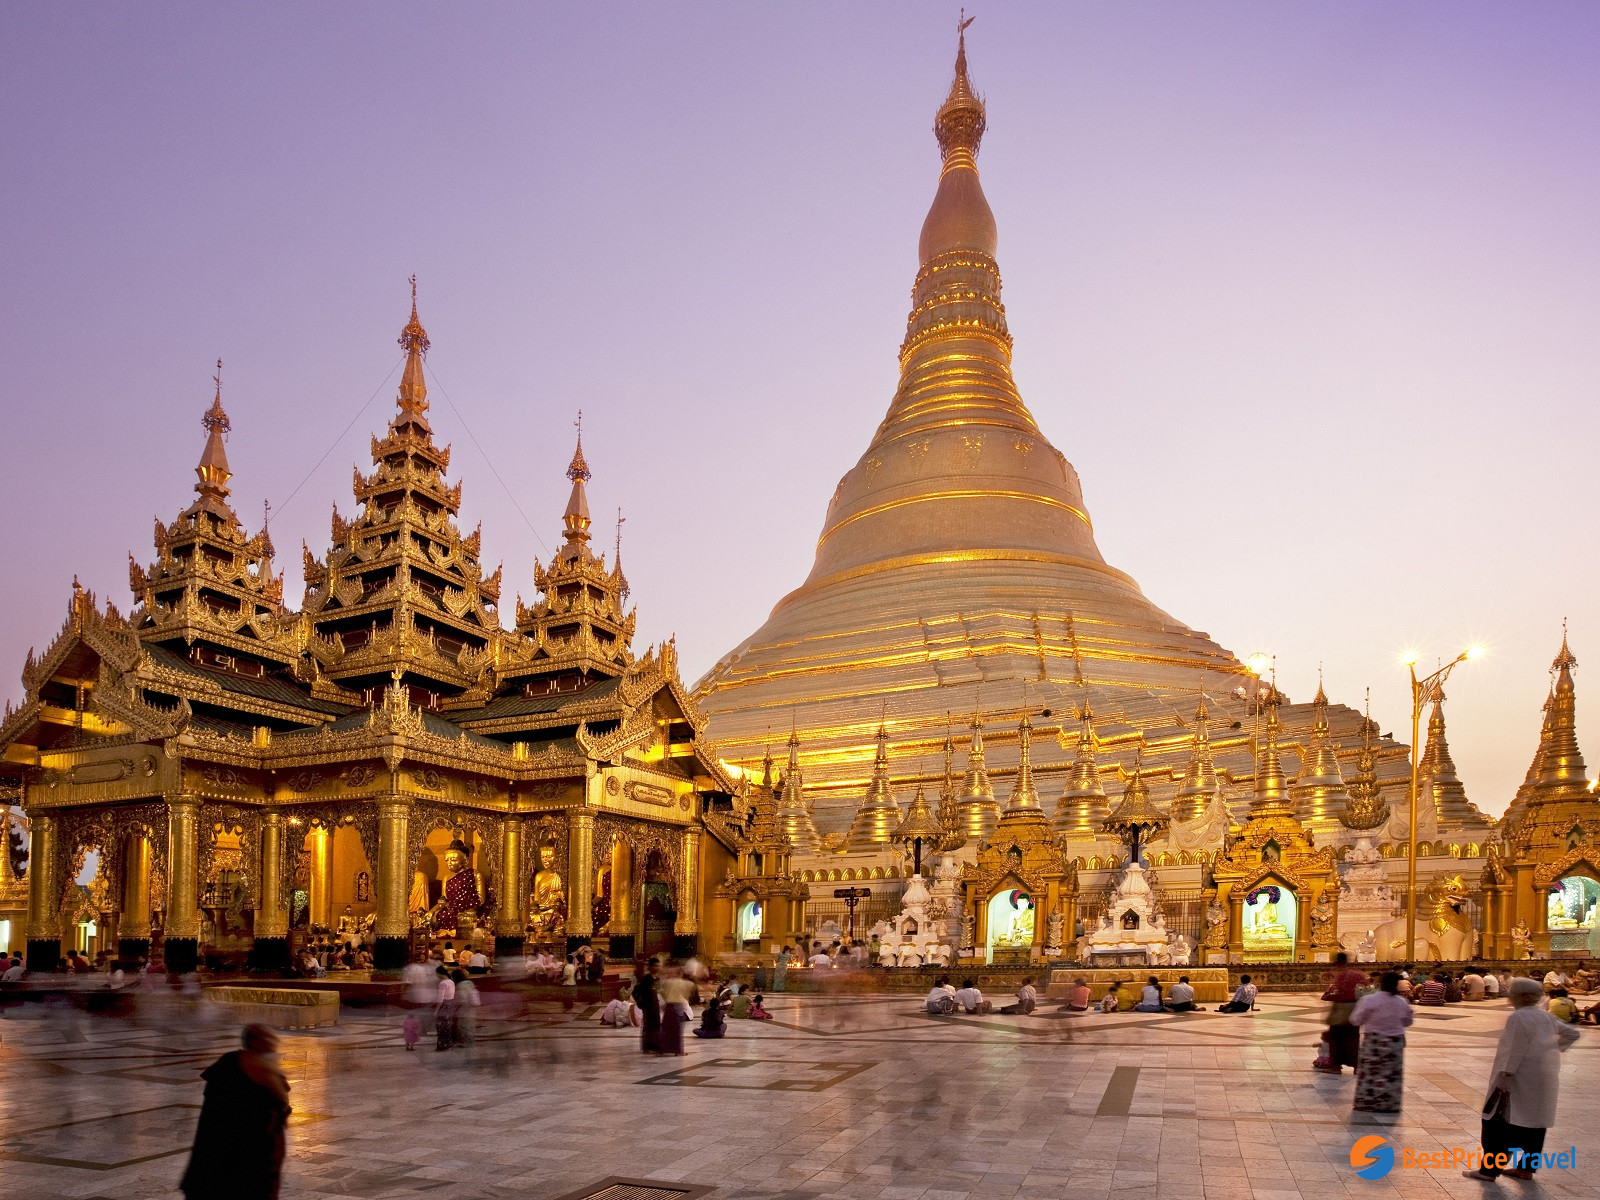 Shwedagon Pagoda is the main highlight of one day trip in Yangon